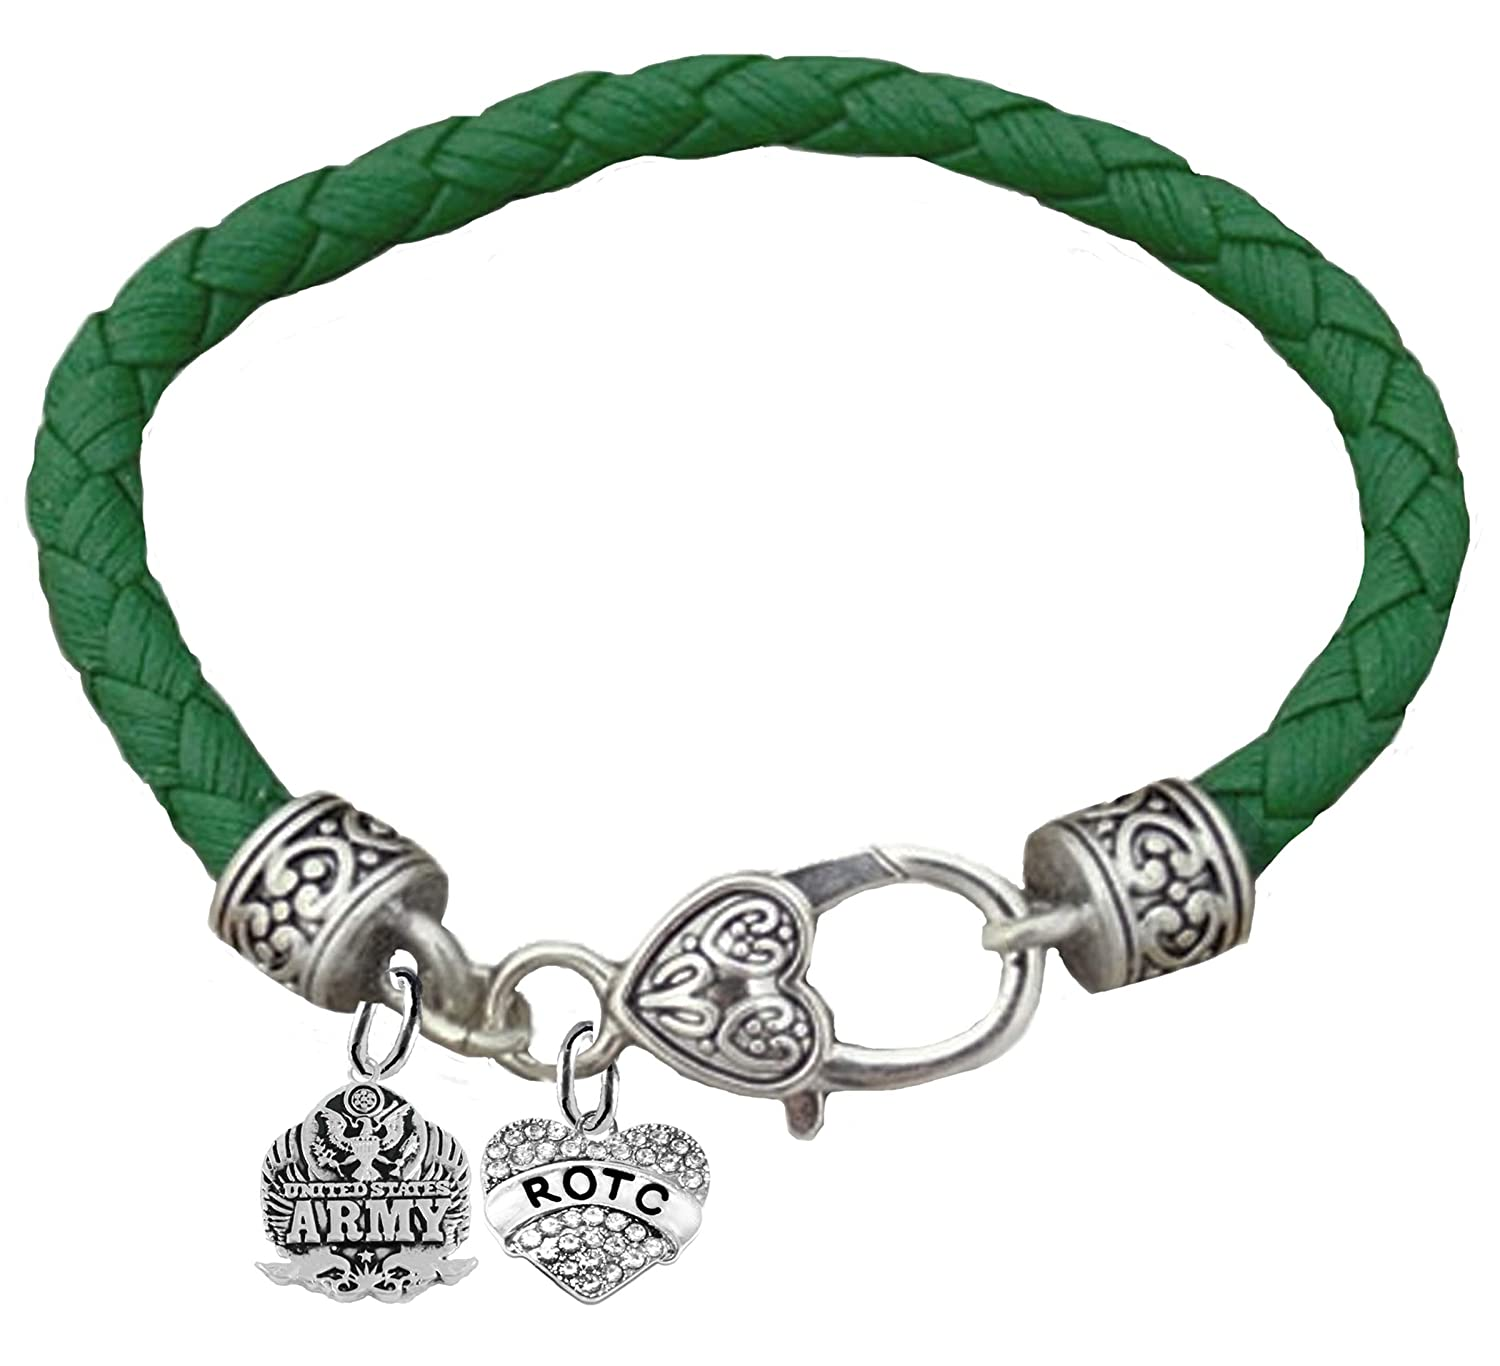 Genuine Army Green Leather Bracelet Hypoallergenic Safe-Nickel Army Seal Cardinali Jewelry ROTC Lead and Cadmium Free